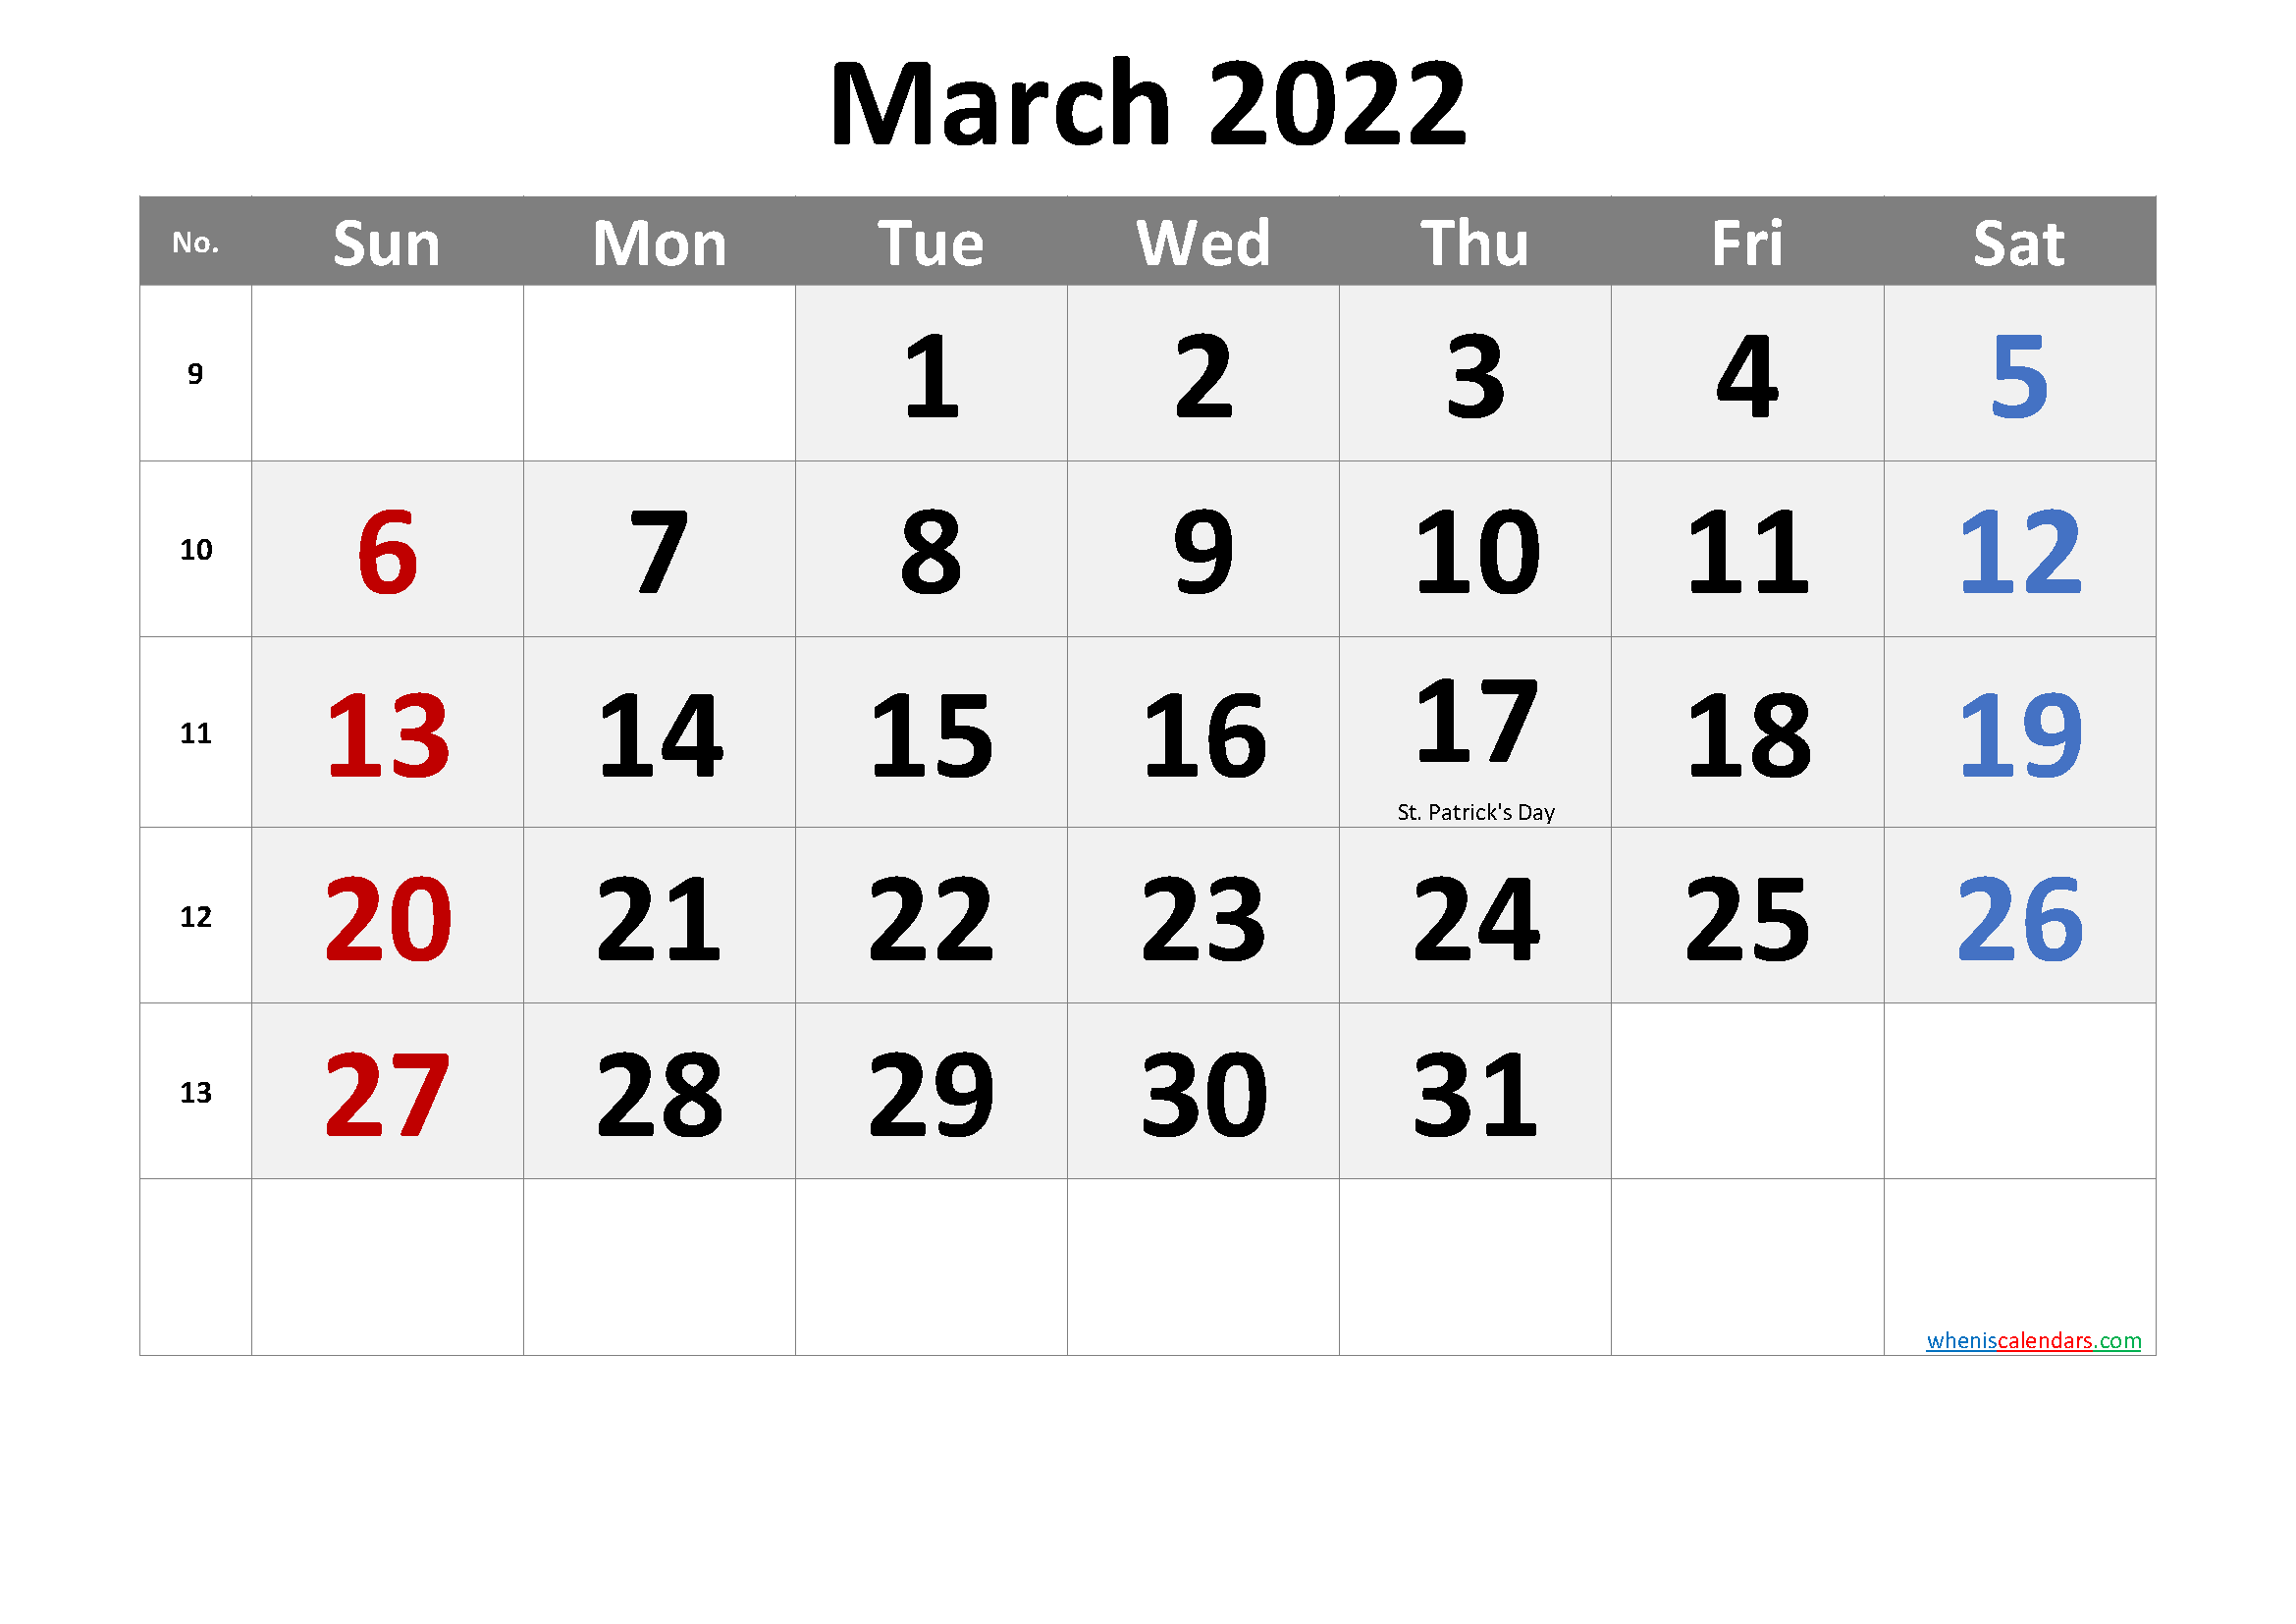 March 2022 Printable Calendar With Holidays - Free Throughout Calendar March April May June 2022